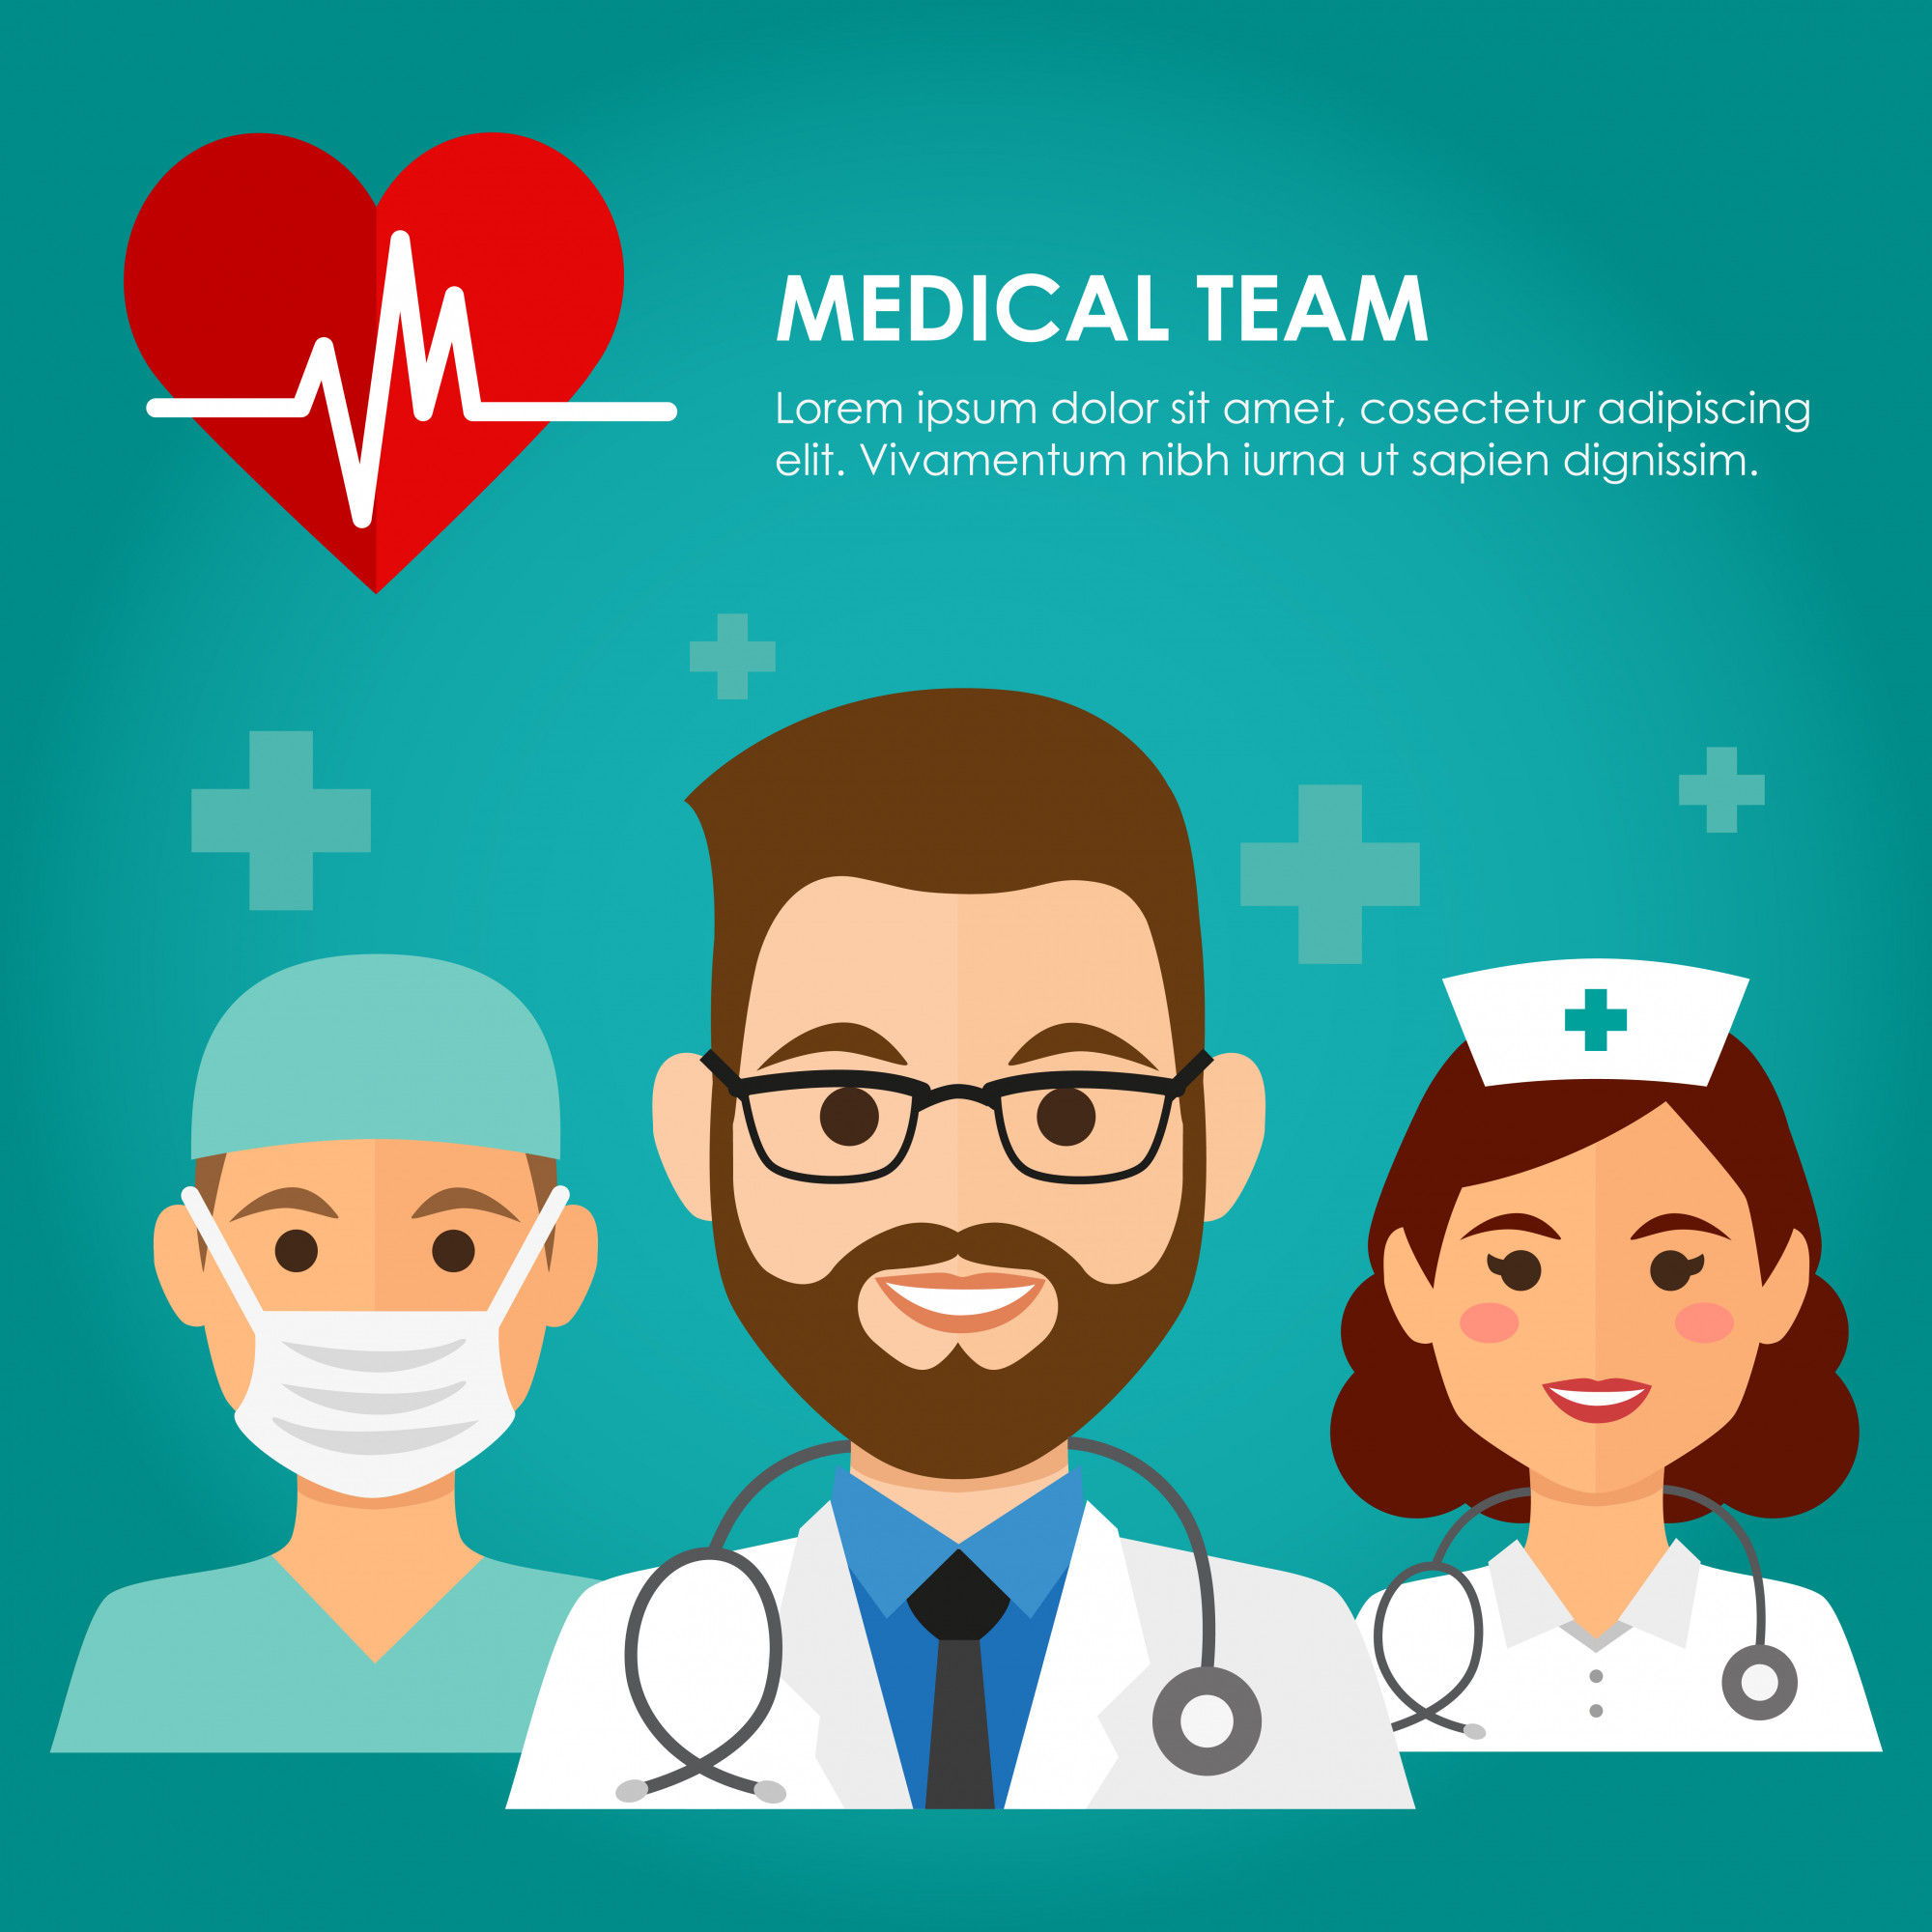 Team of health workers icons, doctor, nurse, and surgeon